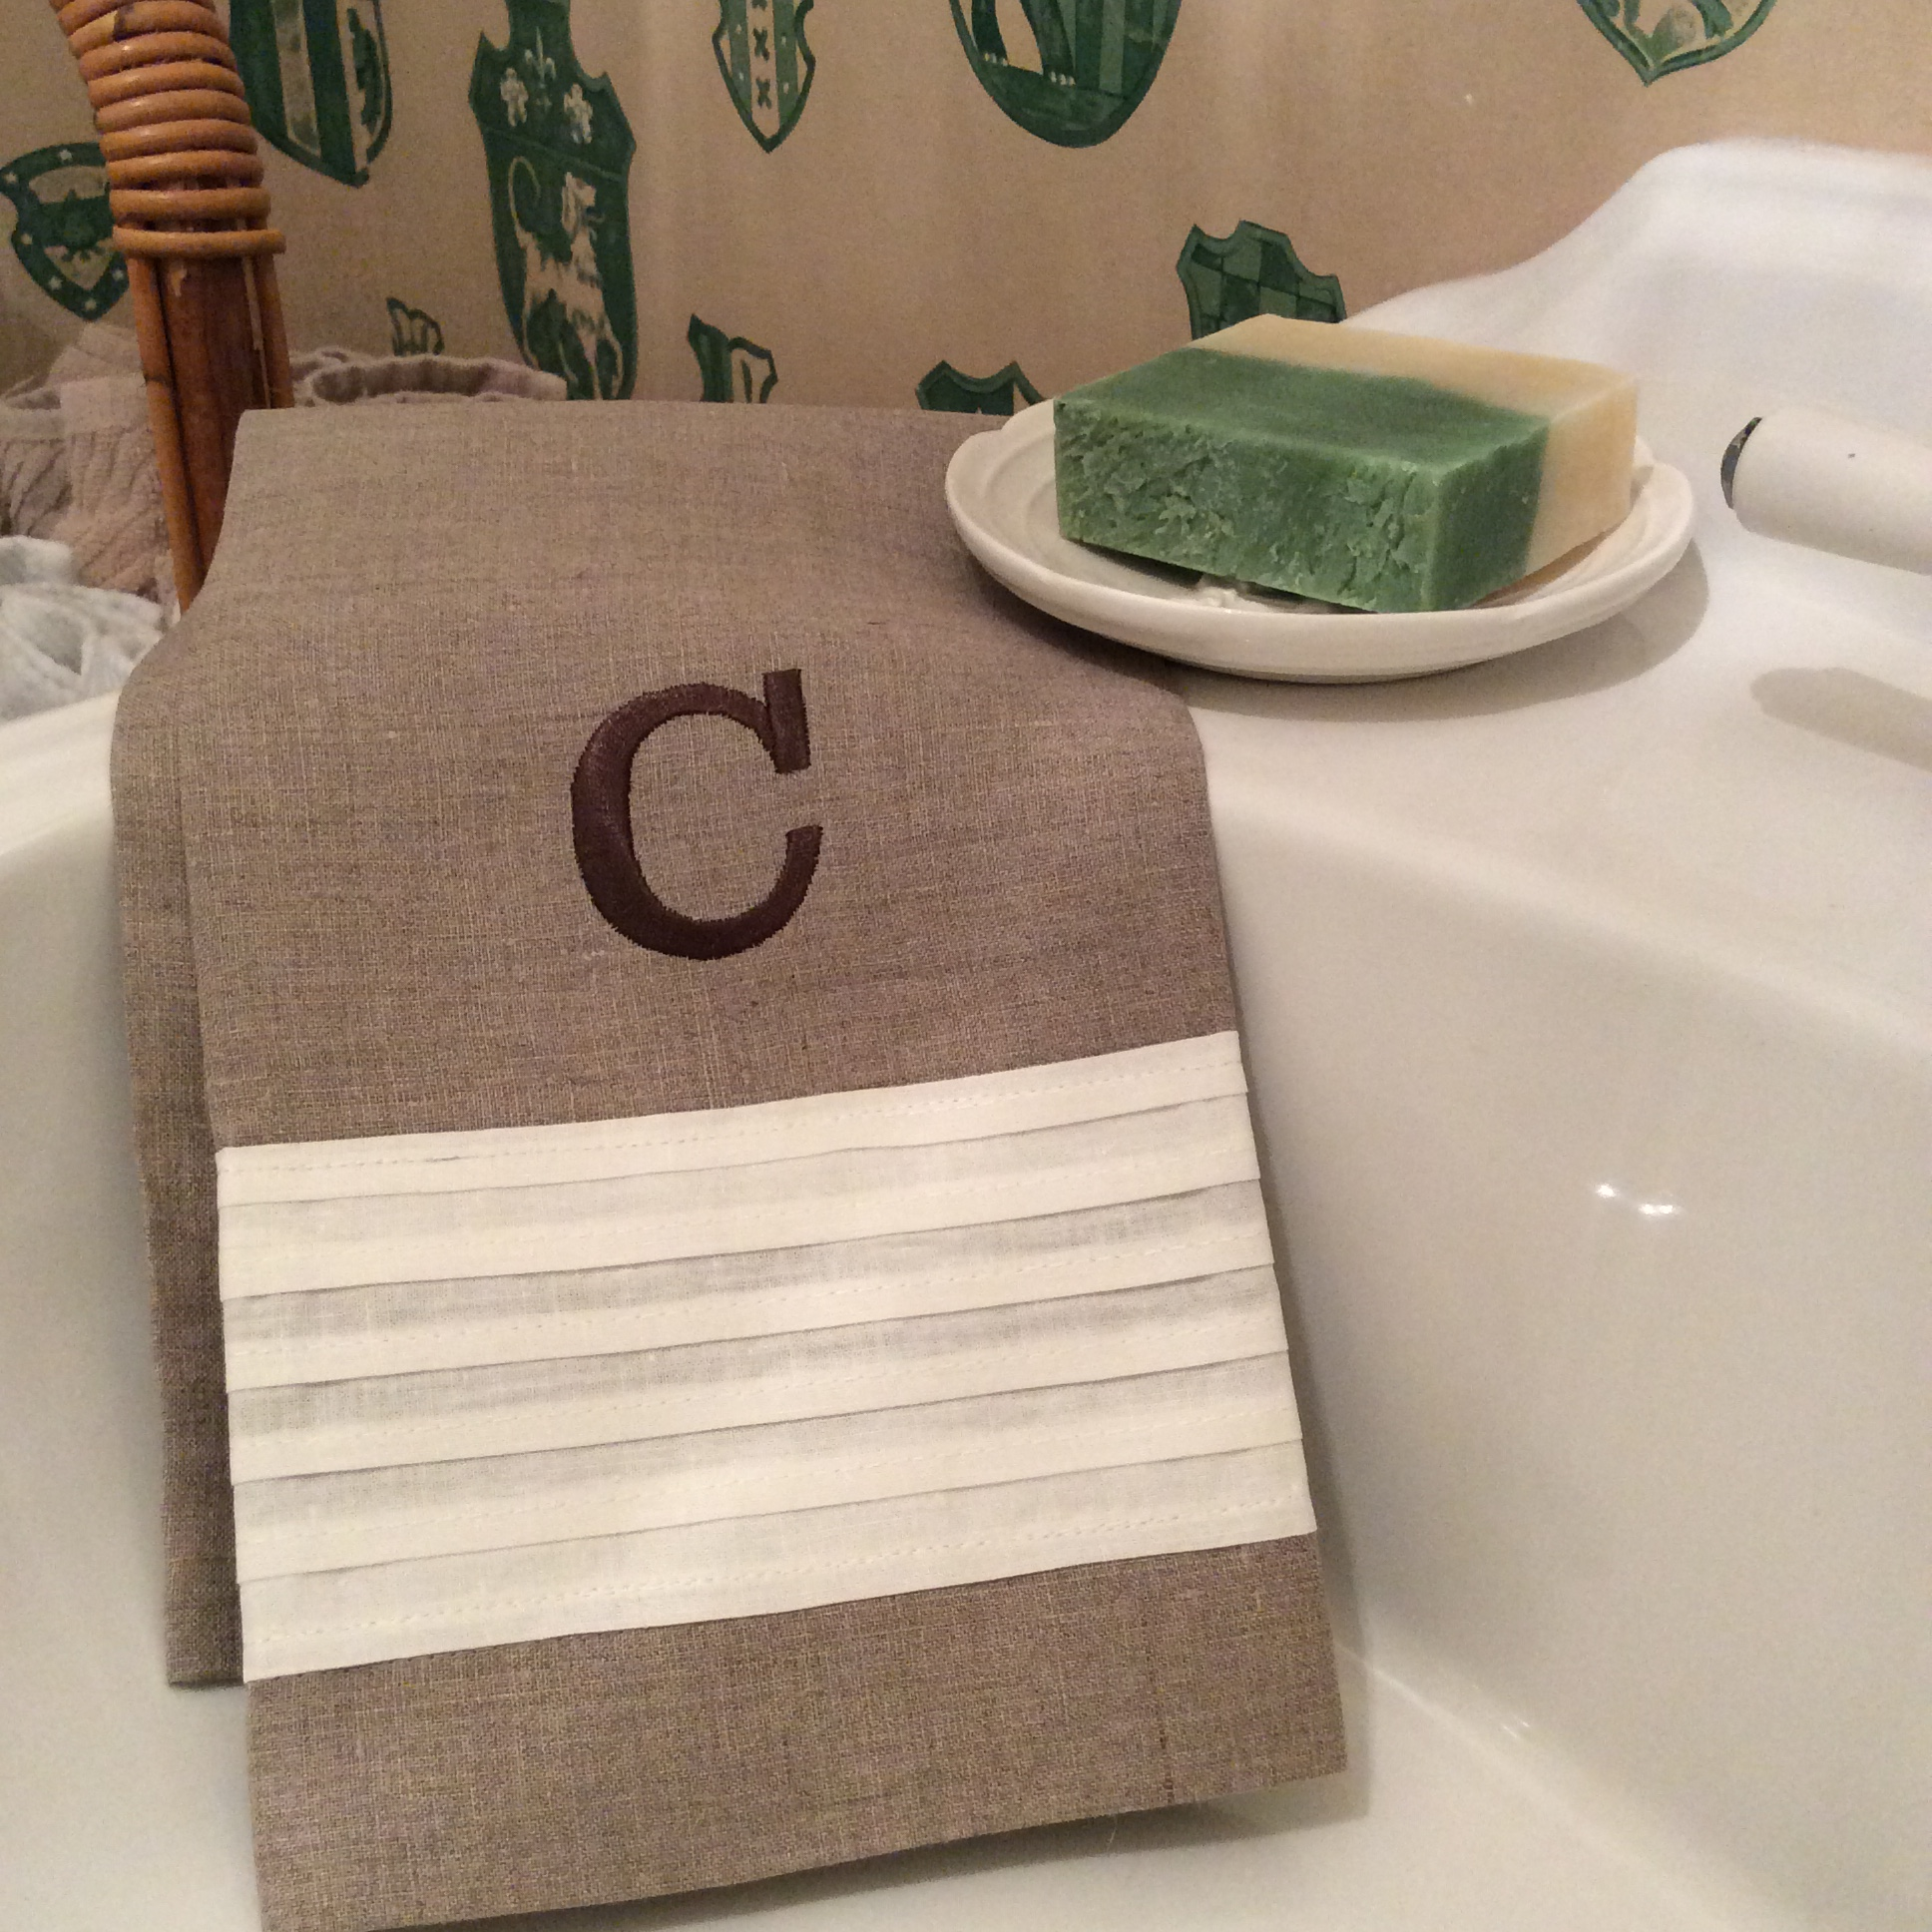 Monogram bathroom towels - Properly Mine Has The Perfect Monogram To Make Our Simple Hand Towels Go From Basic To Elegant Browse Through Our Assortment Of Terry Cloth Towels And